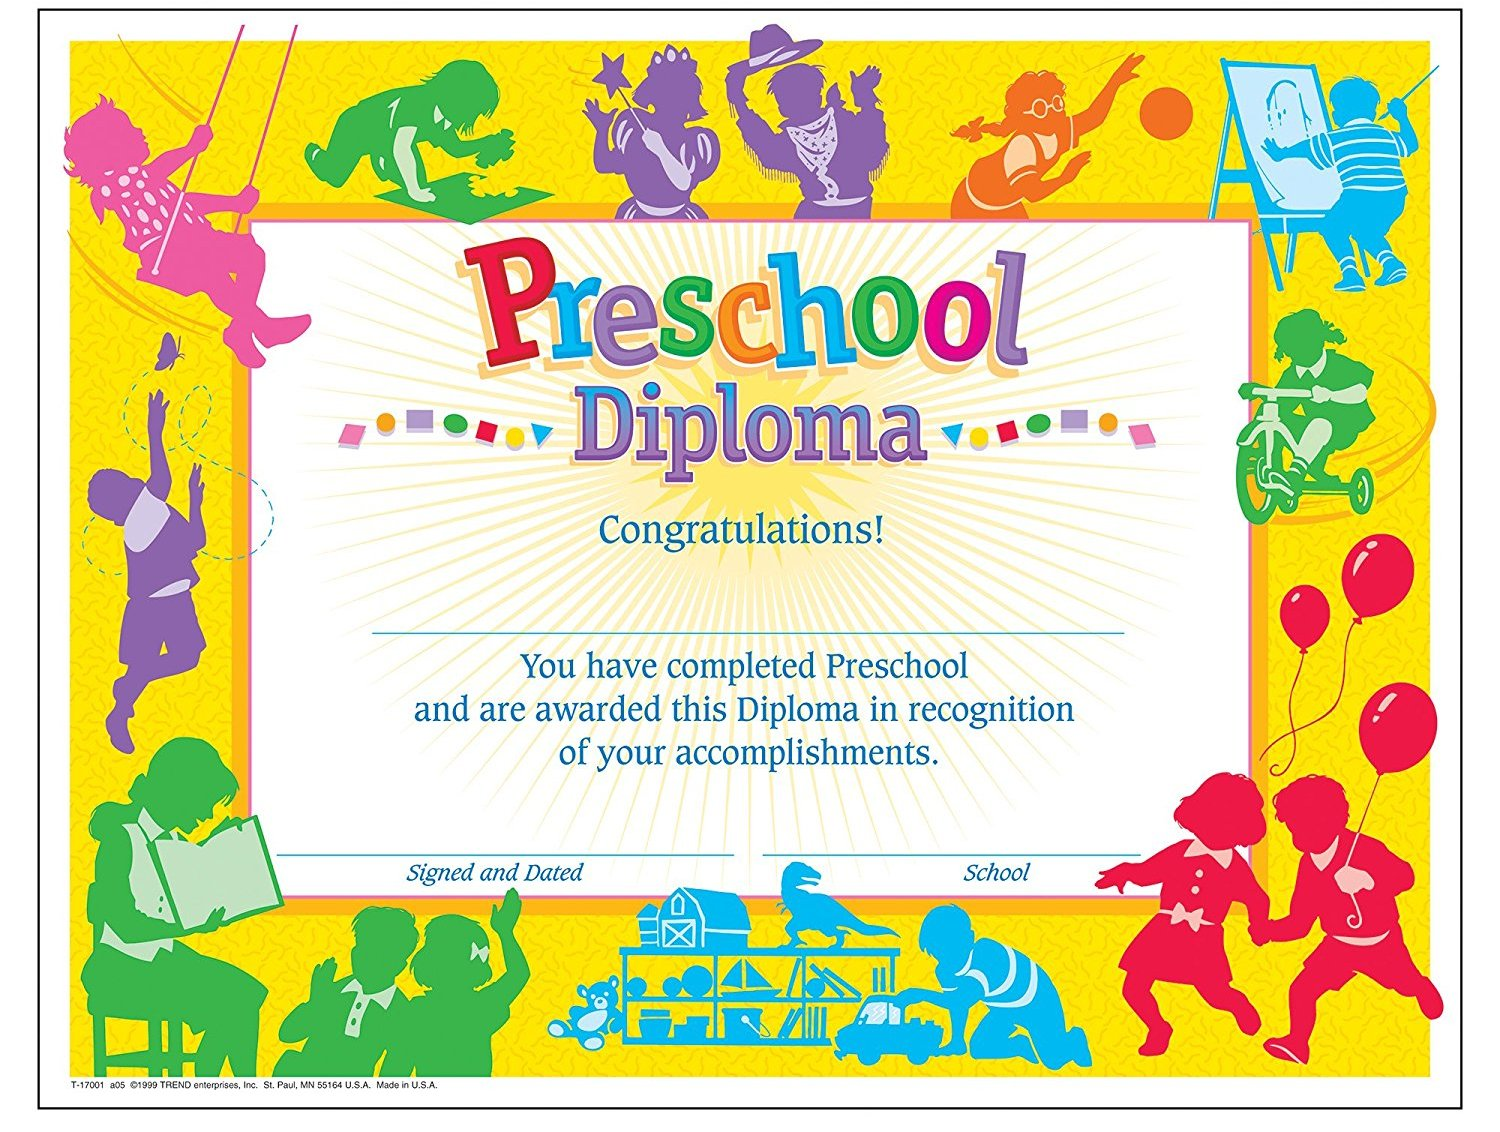 Graduation certificate template for preschool apa templates graduation certificate template for preschool alramifo Choice Image